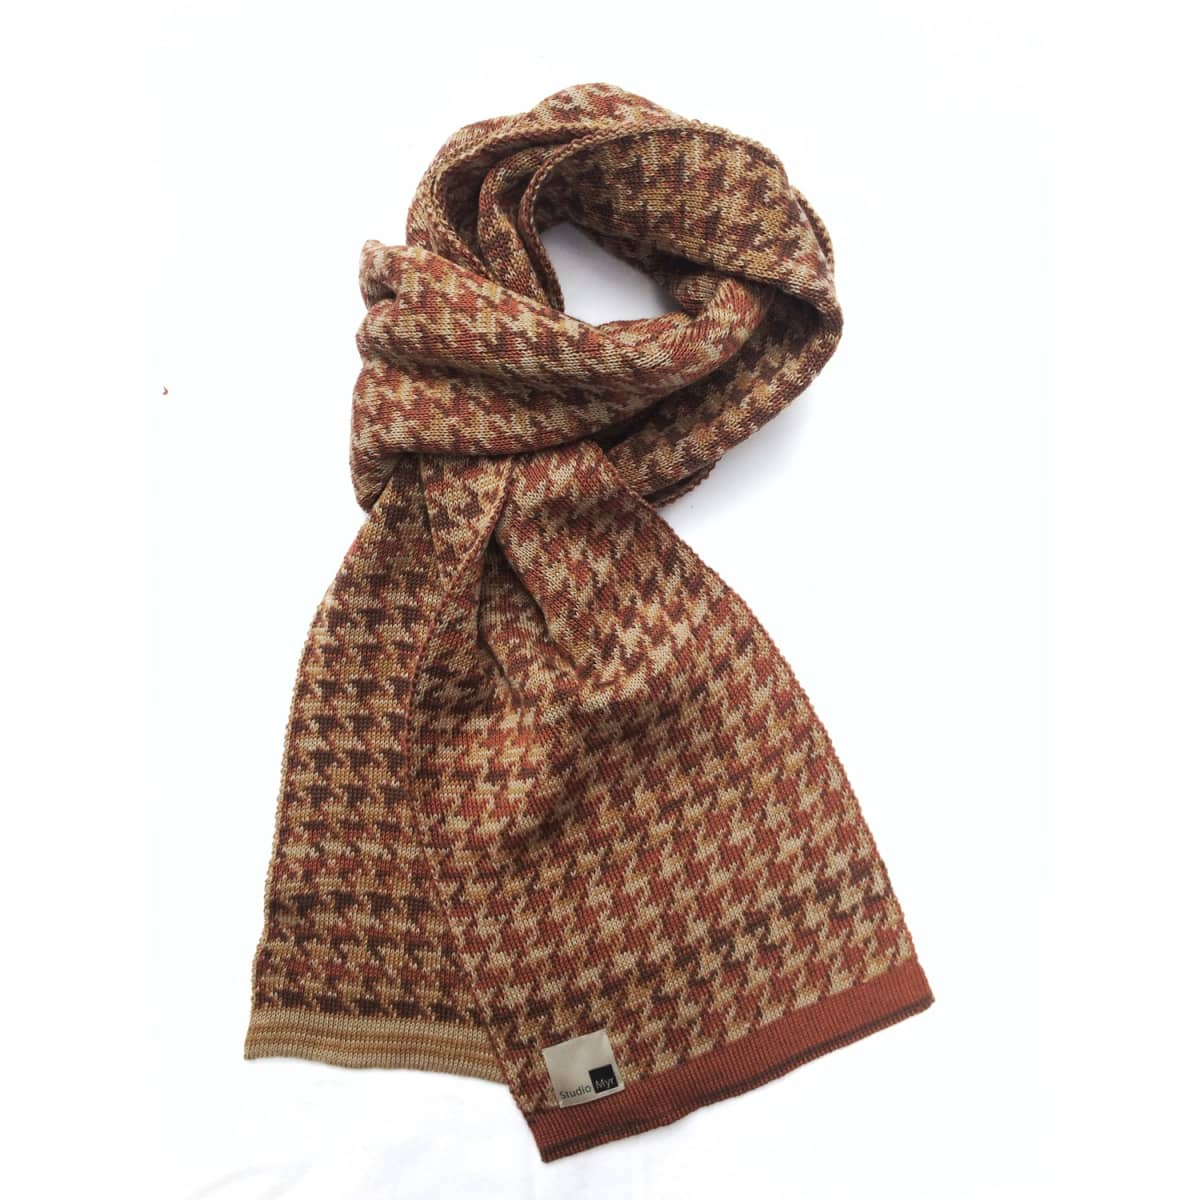 Best gifts for men: Luxury merino scarf | Small Business Holiday Gifts 2020